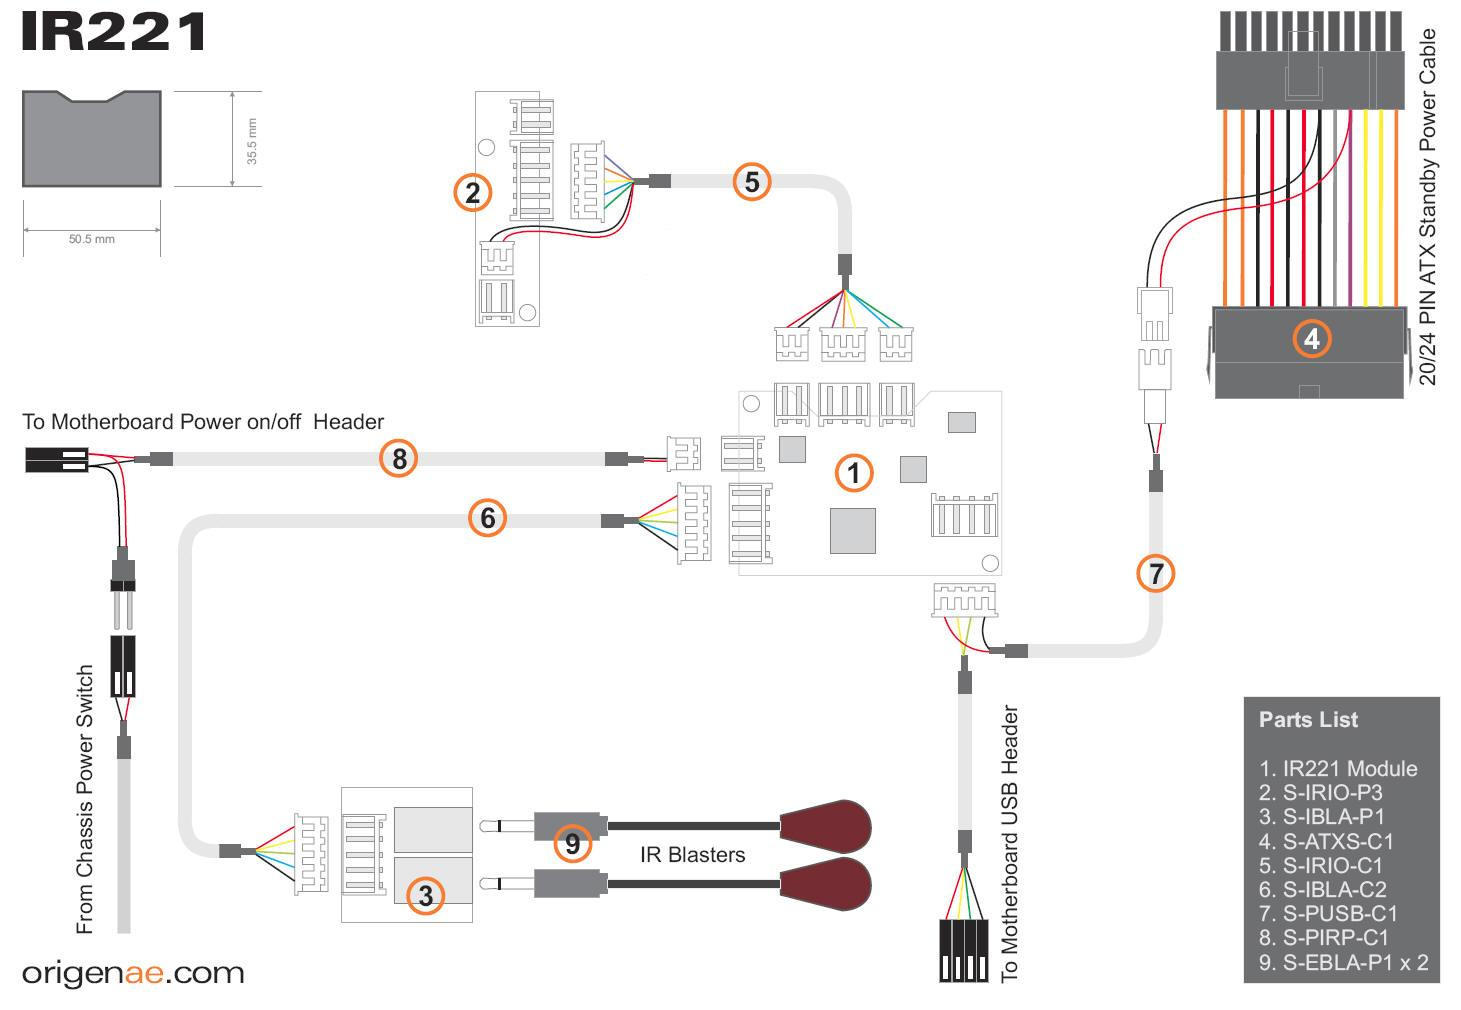 Sata To Esata Cable Wiring Diagram | Wiring Diagram - What Is The Difference Between A Usb And An Esata Wiring Diagram